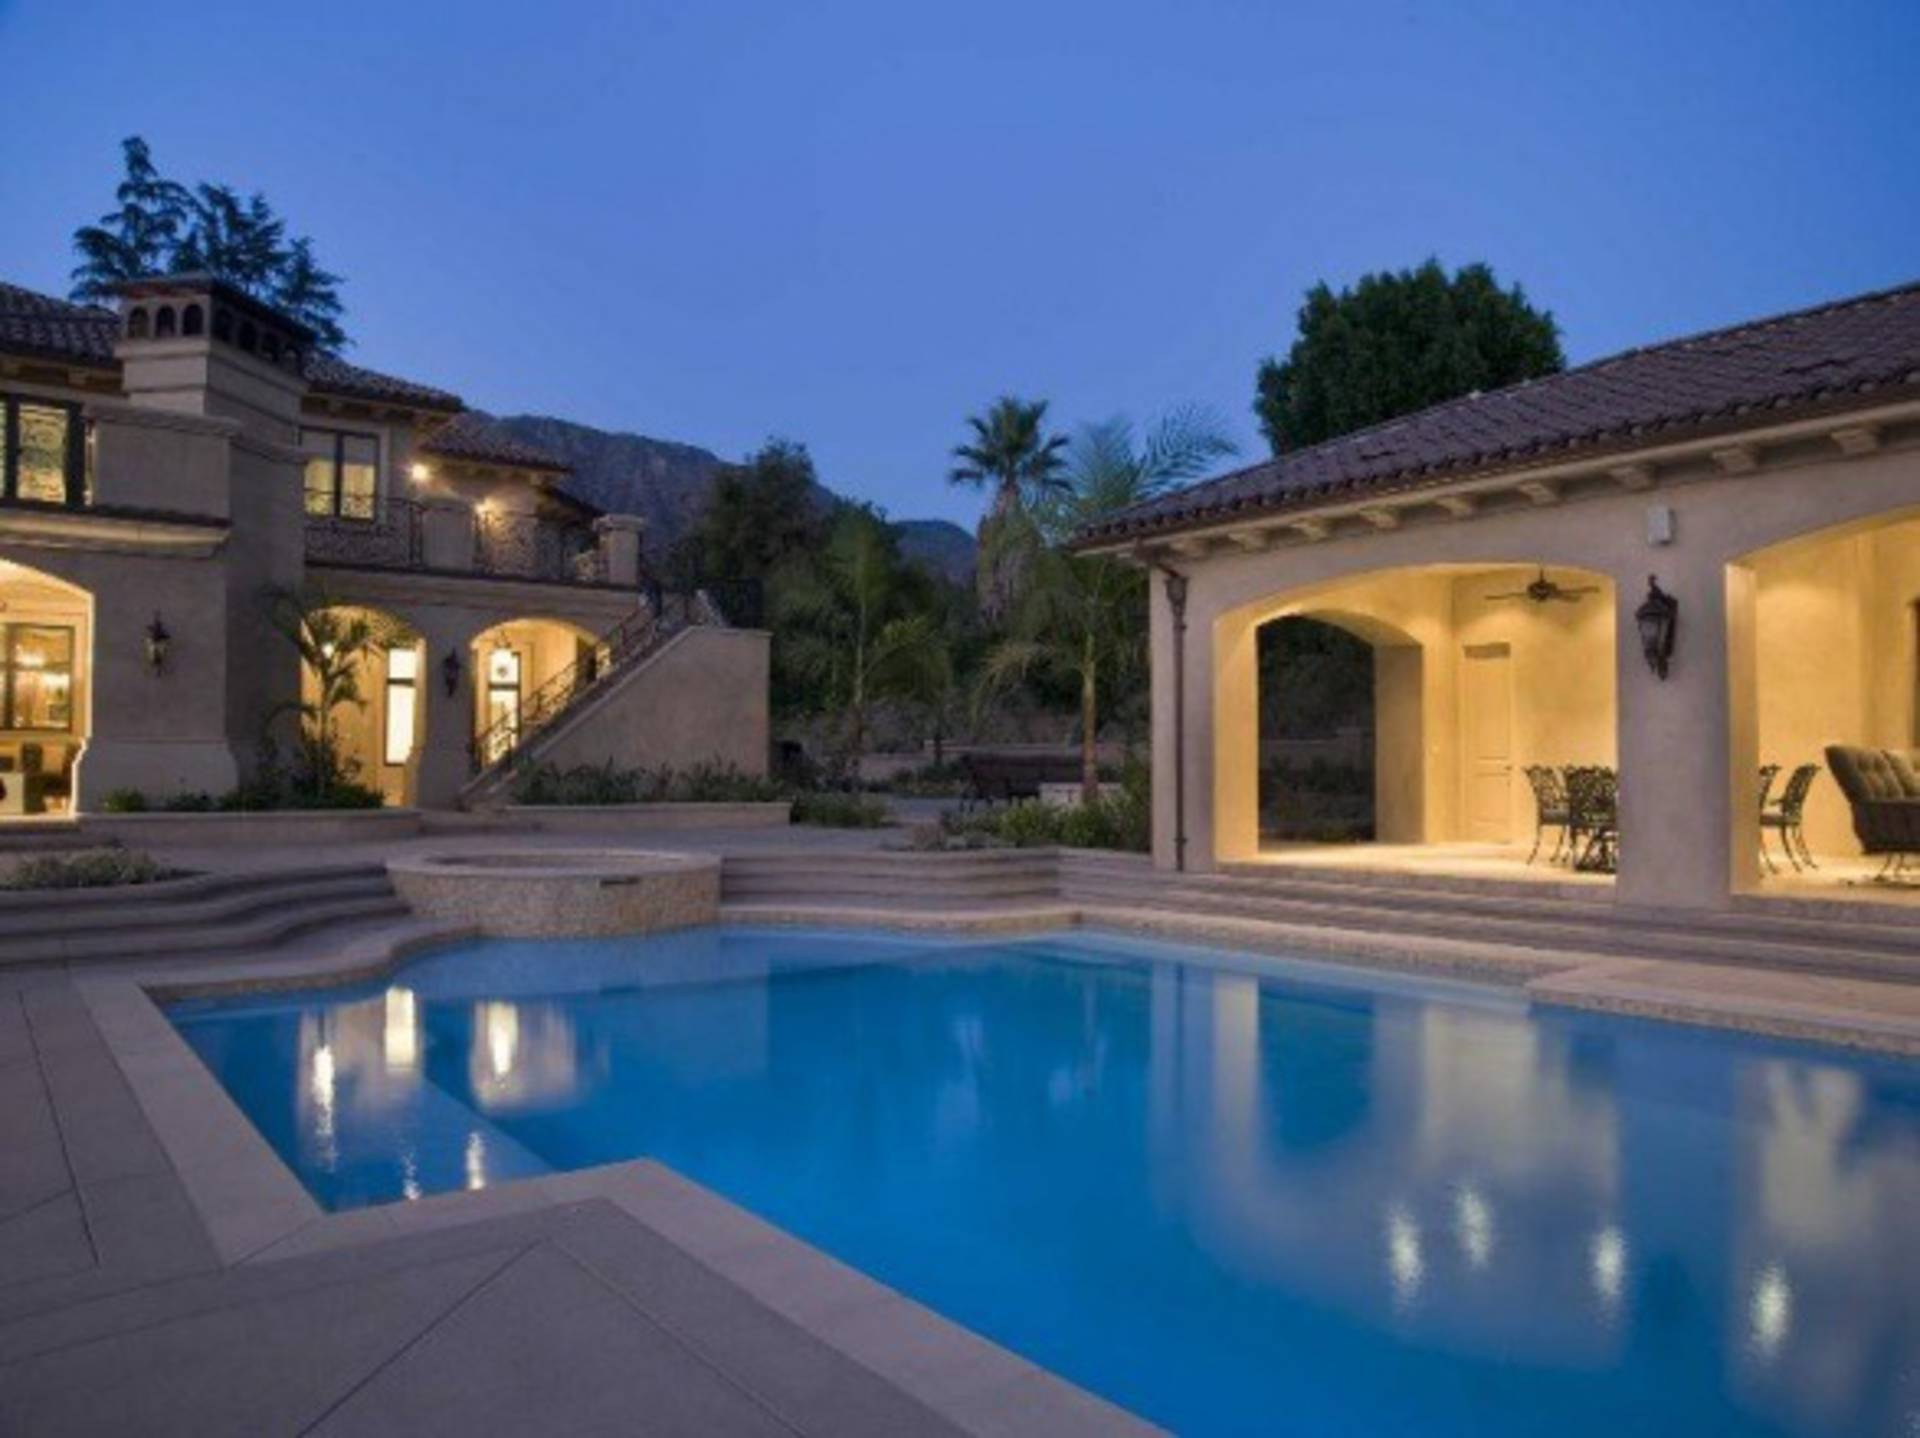 Spectacular luxury mansion in california home reviews for Luxury houses in california